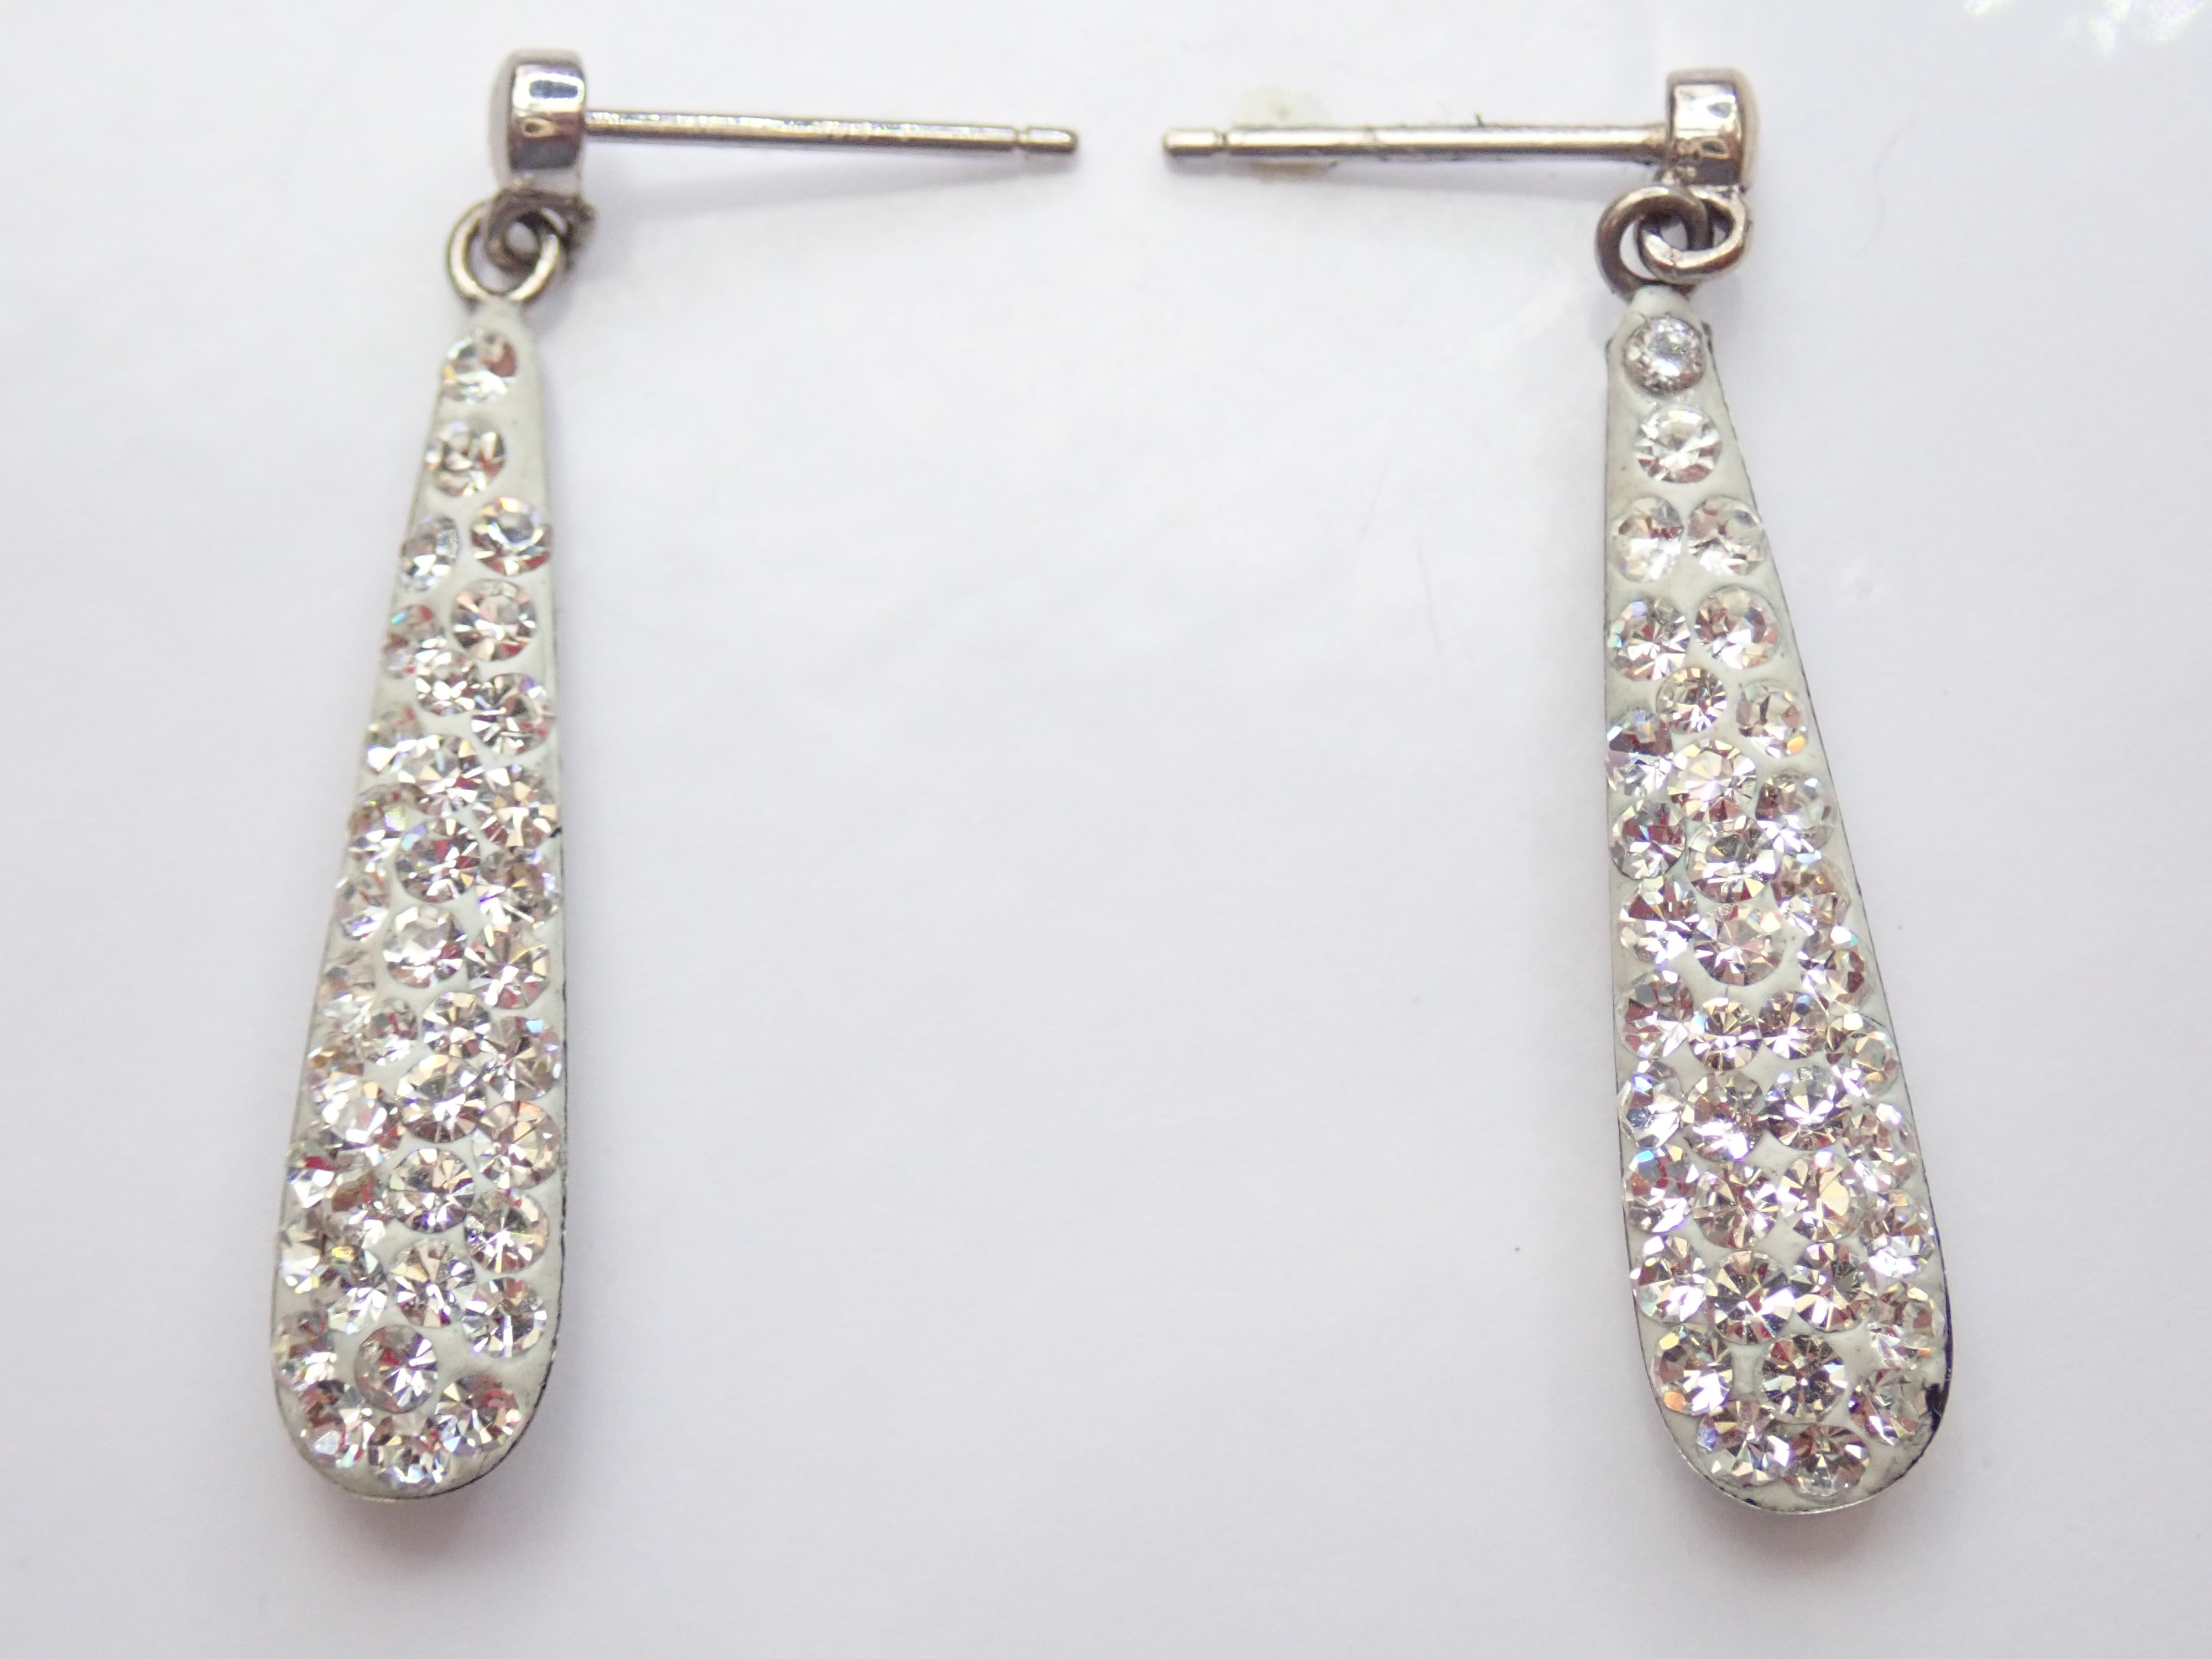 9k White Gold Cubic Zirconia Bomb Drop Dangly Earrings & Butterfly's 1.50gms #20